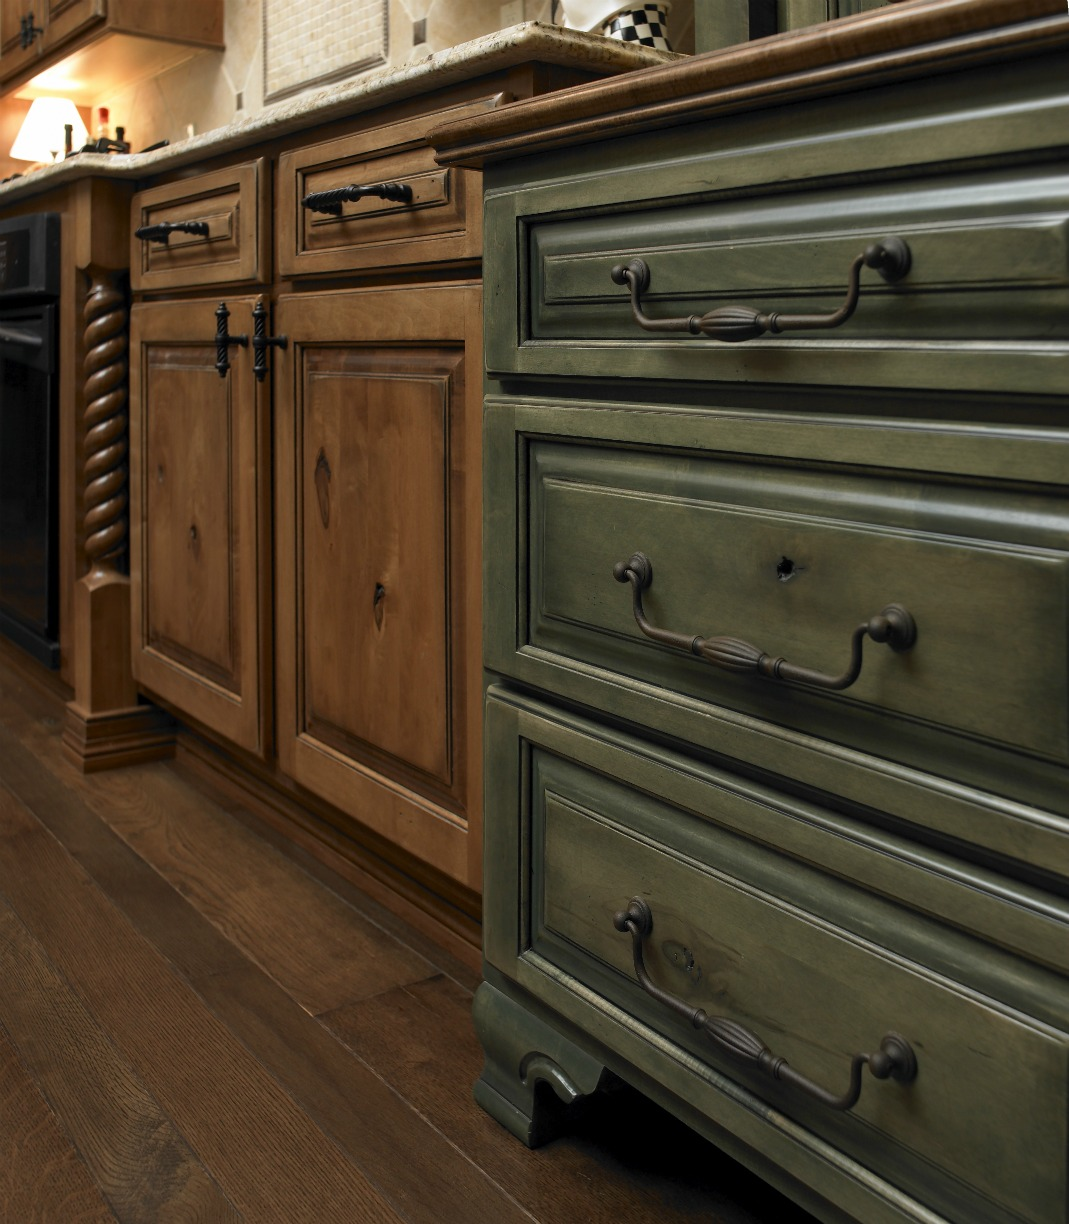 Nh Kitchen Cabinets: Remodeling Cabinets